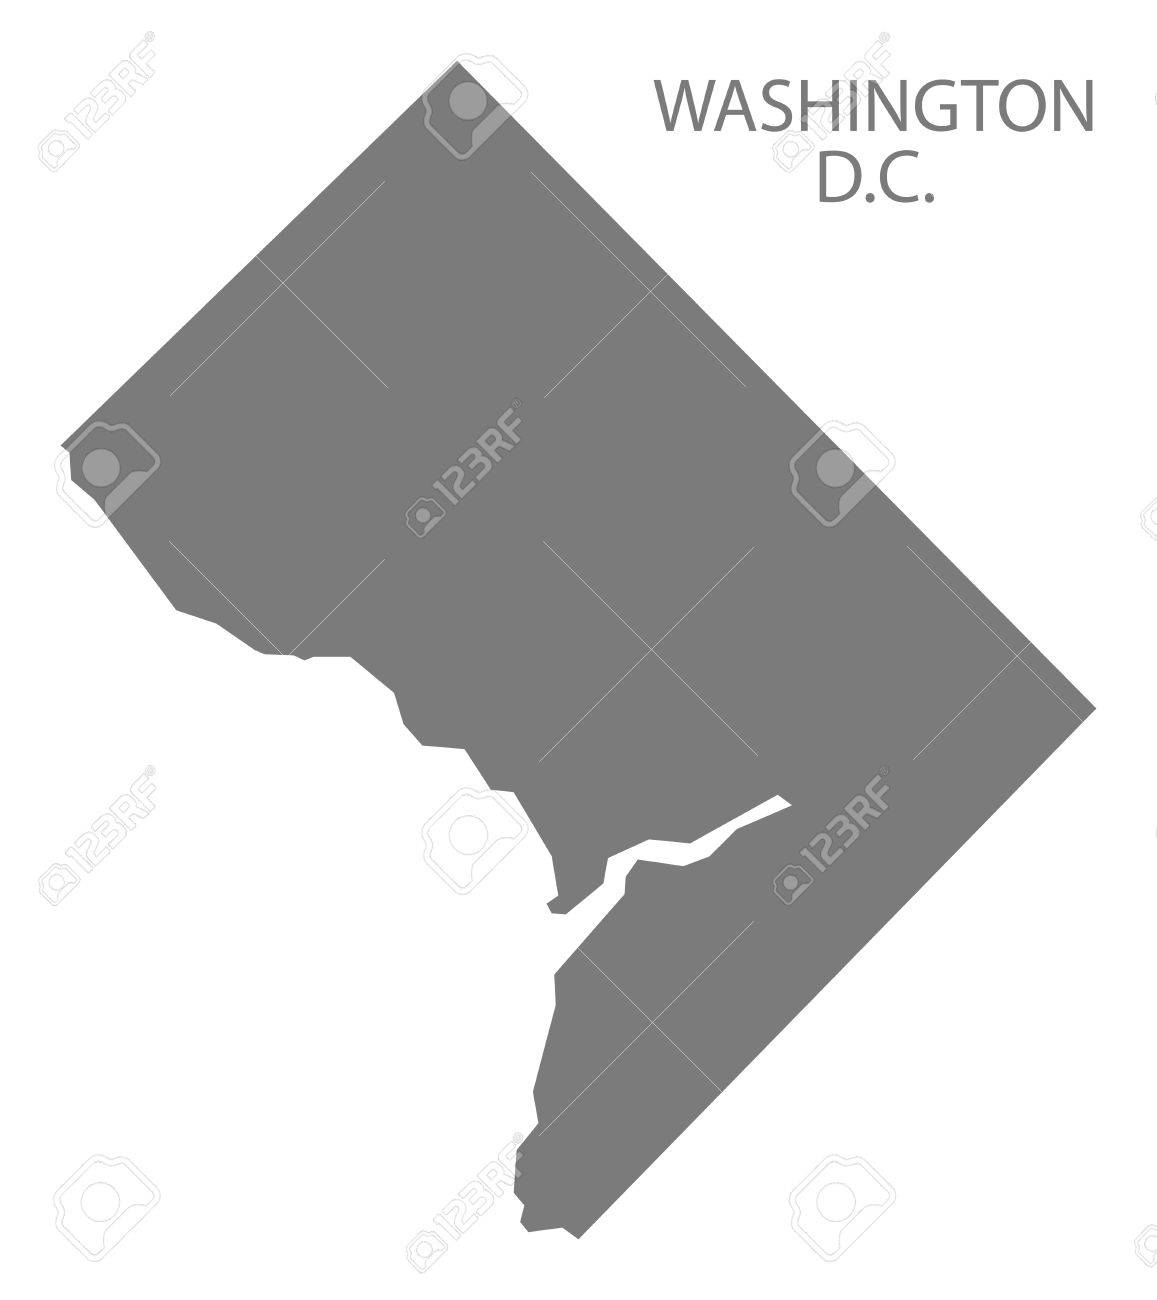 Palliative Care Report Card Cool Map World US Map Of Washington - Washington dc location in the usa map